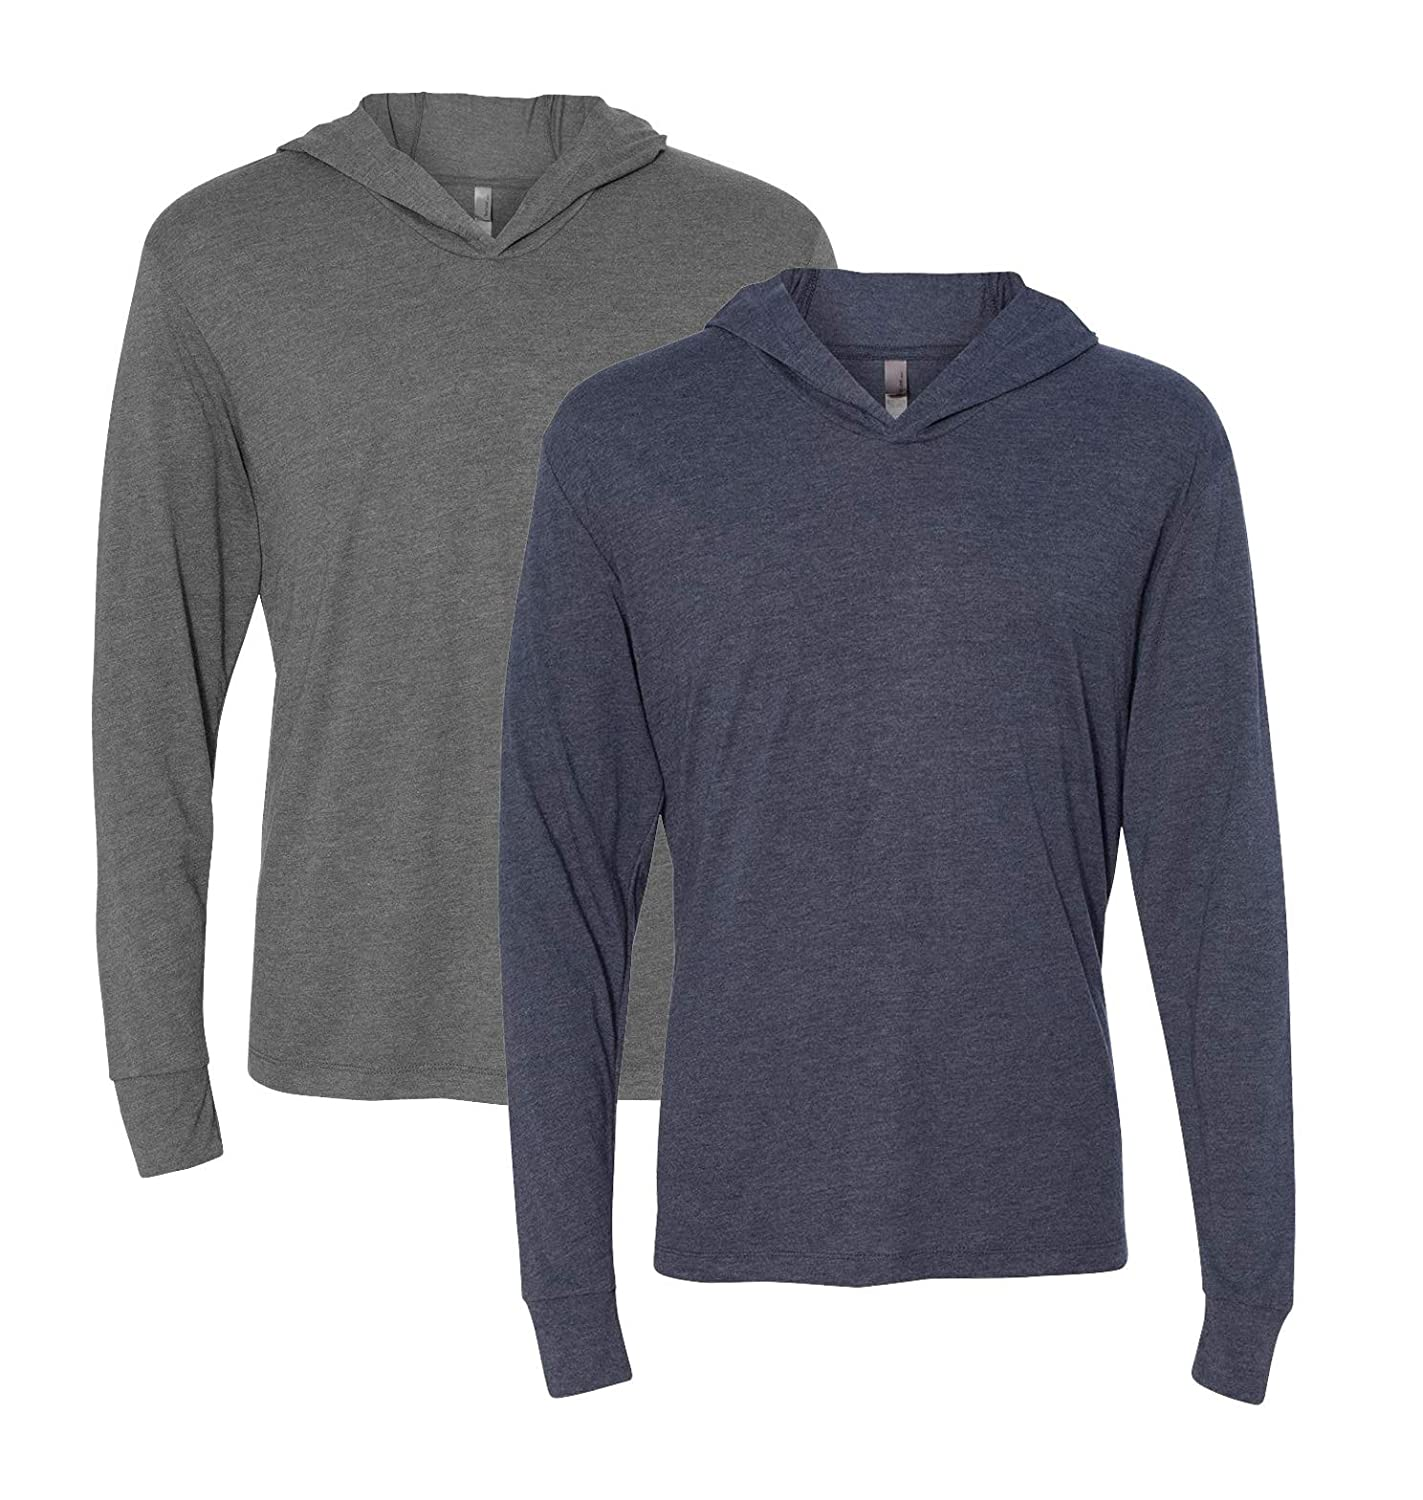 N6021 Next Level mens Triblend Long-Sleeve Hoodie